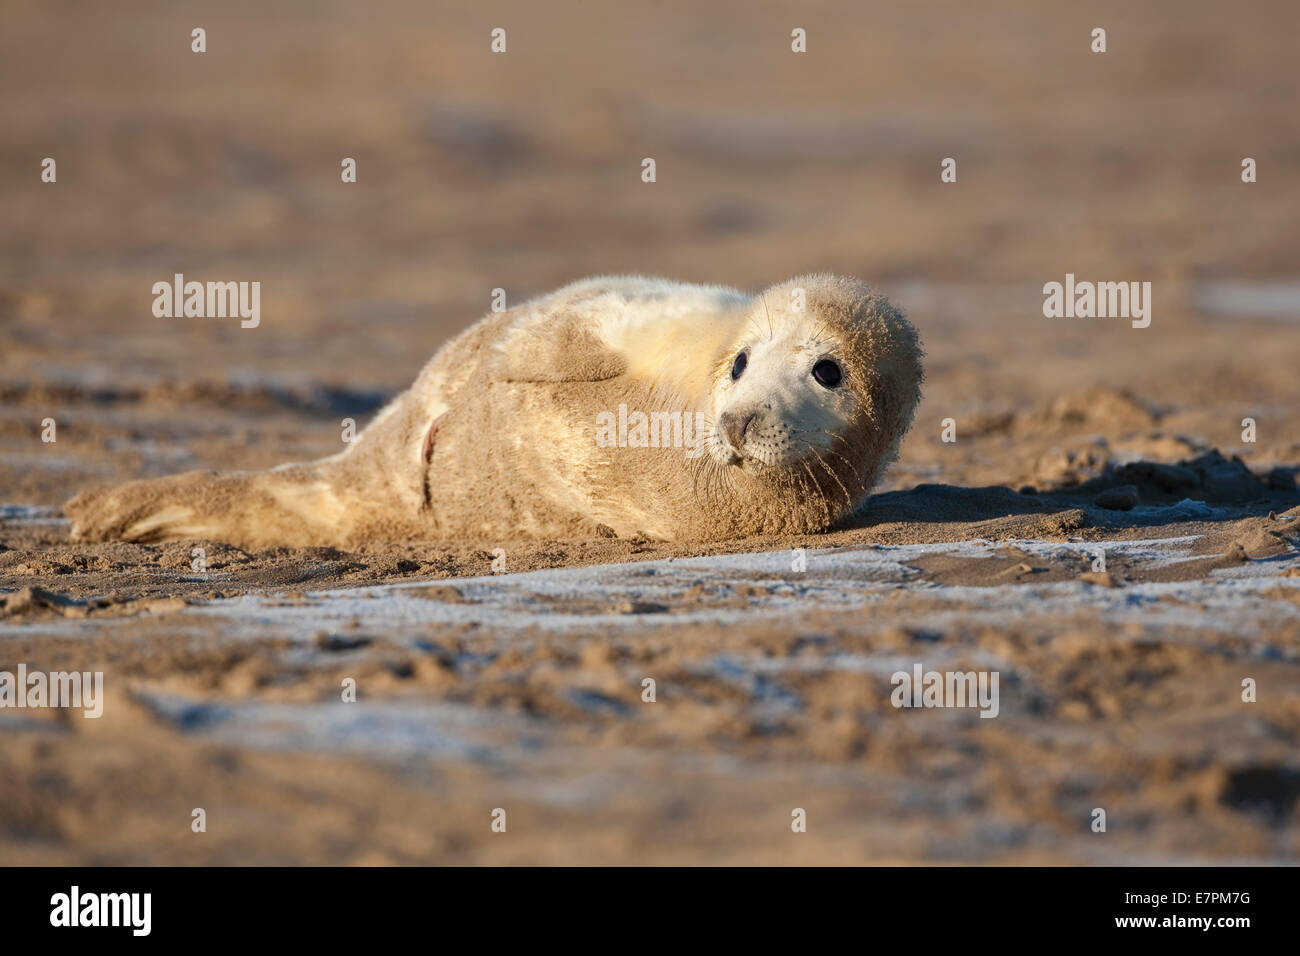 Grey Gray Seal Pup  Halichoerus grypus   lying on sand at low tide at Donna Nook, Lincolnshire, England Stock Photo